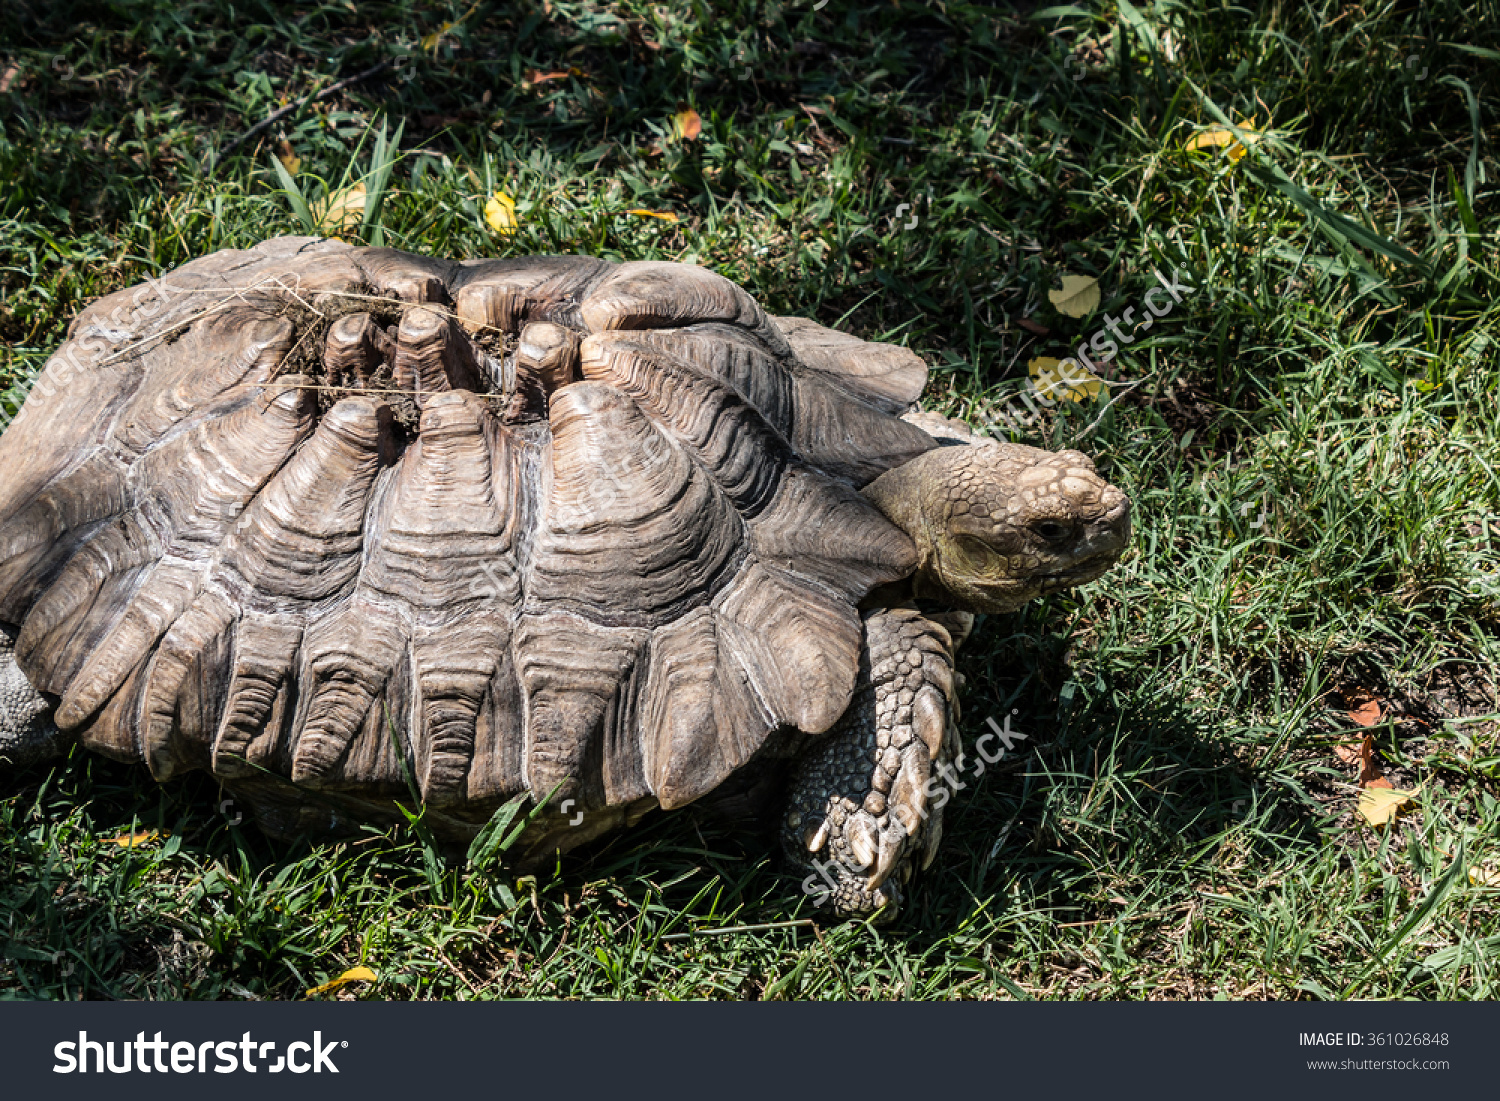 Sulcata Tortoise clipart #2, Download drawings